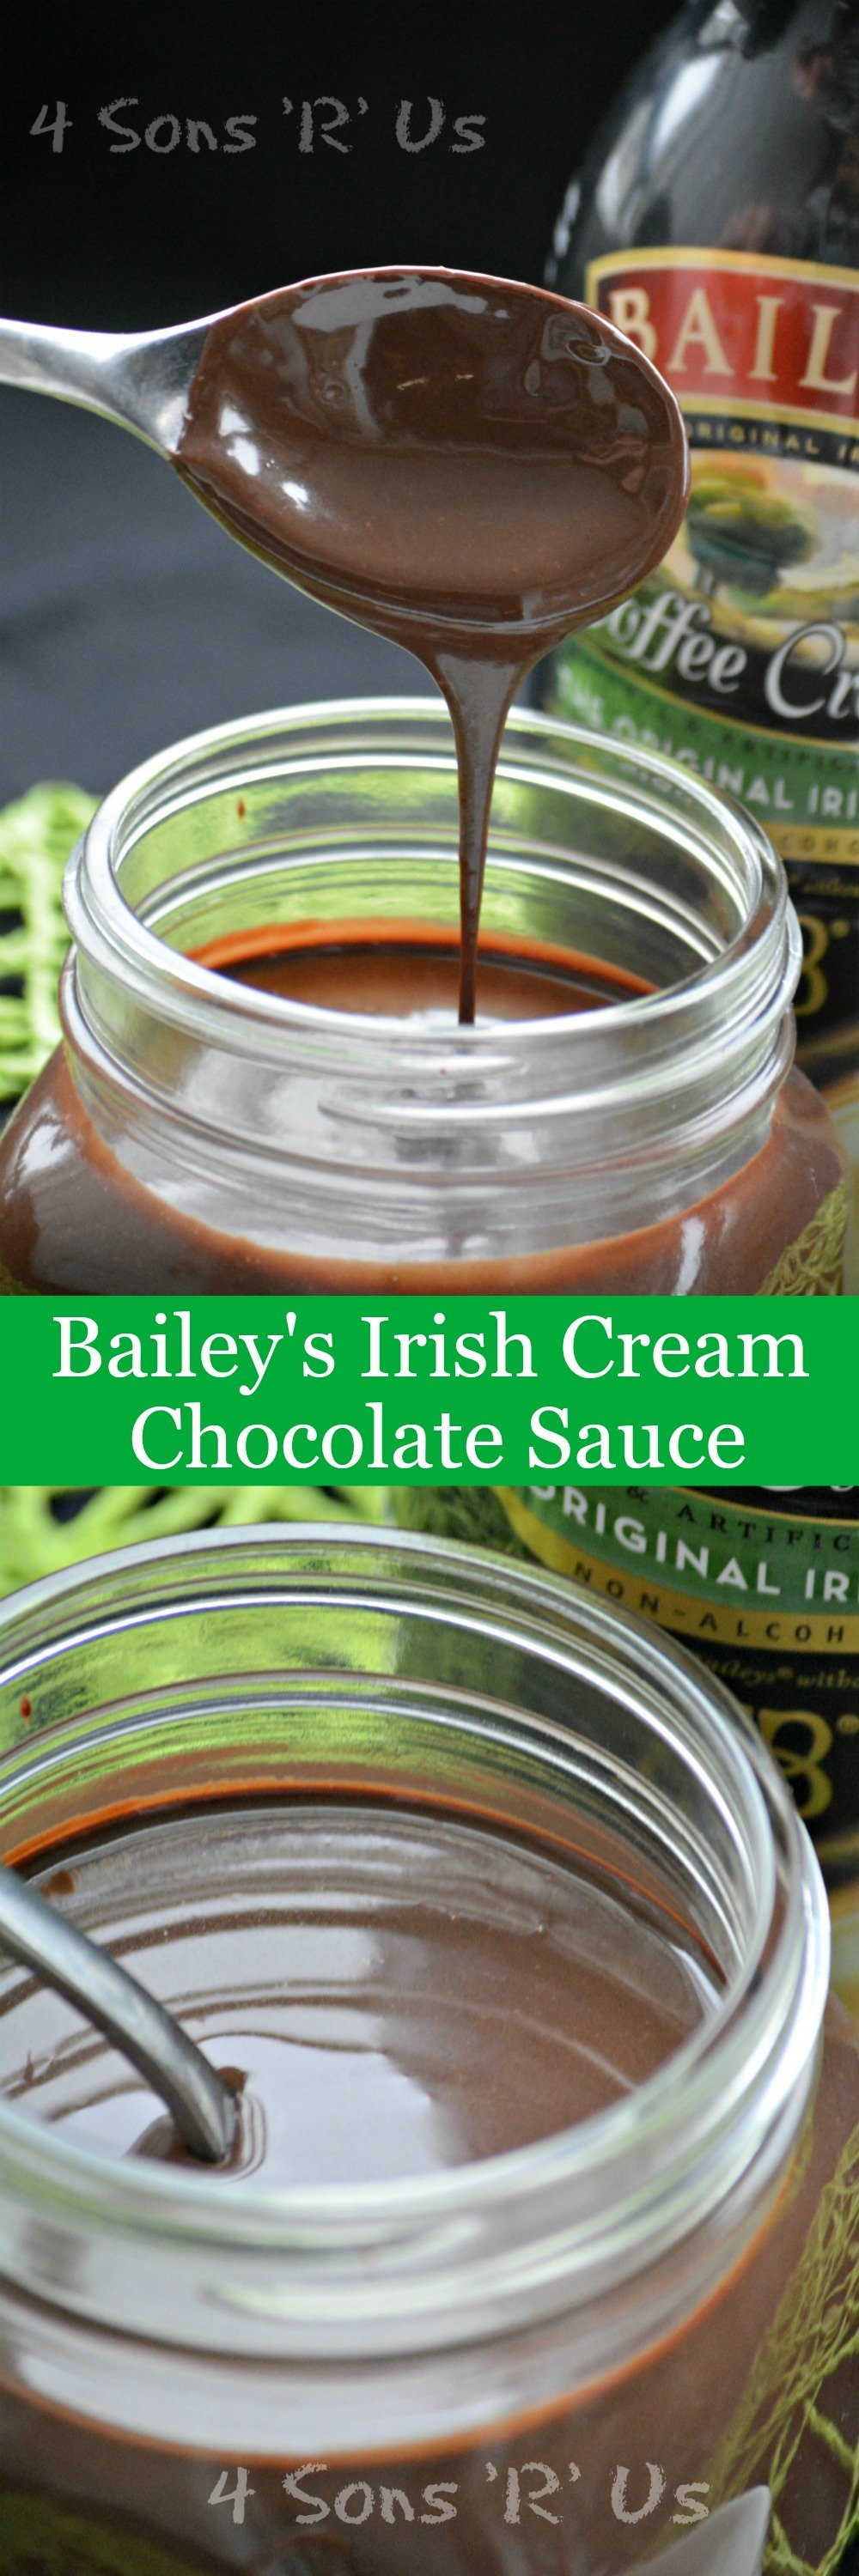 Rich & creamy this fudgey Bailey's Irish Cream Chocolate Sauce is quick, easy, and will knock your socks off with flavor. Perfect over ice cream, donuts, or even stirred into your morning cup of coffee- this sauce is a must-have on hand for a sweet simple moment of indulgence.